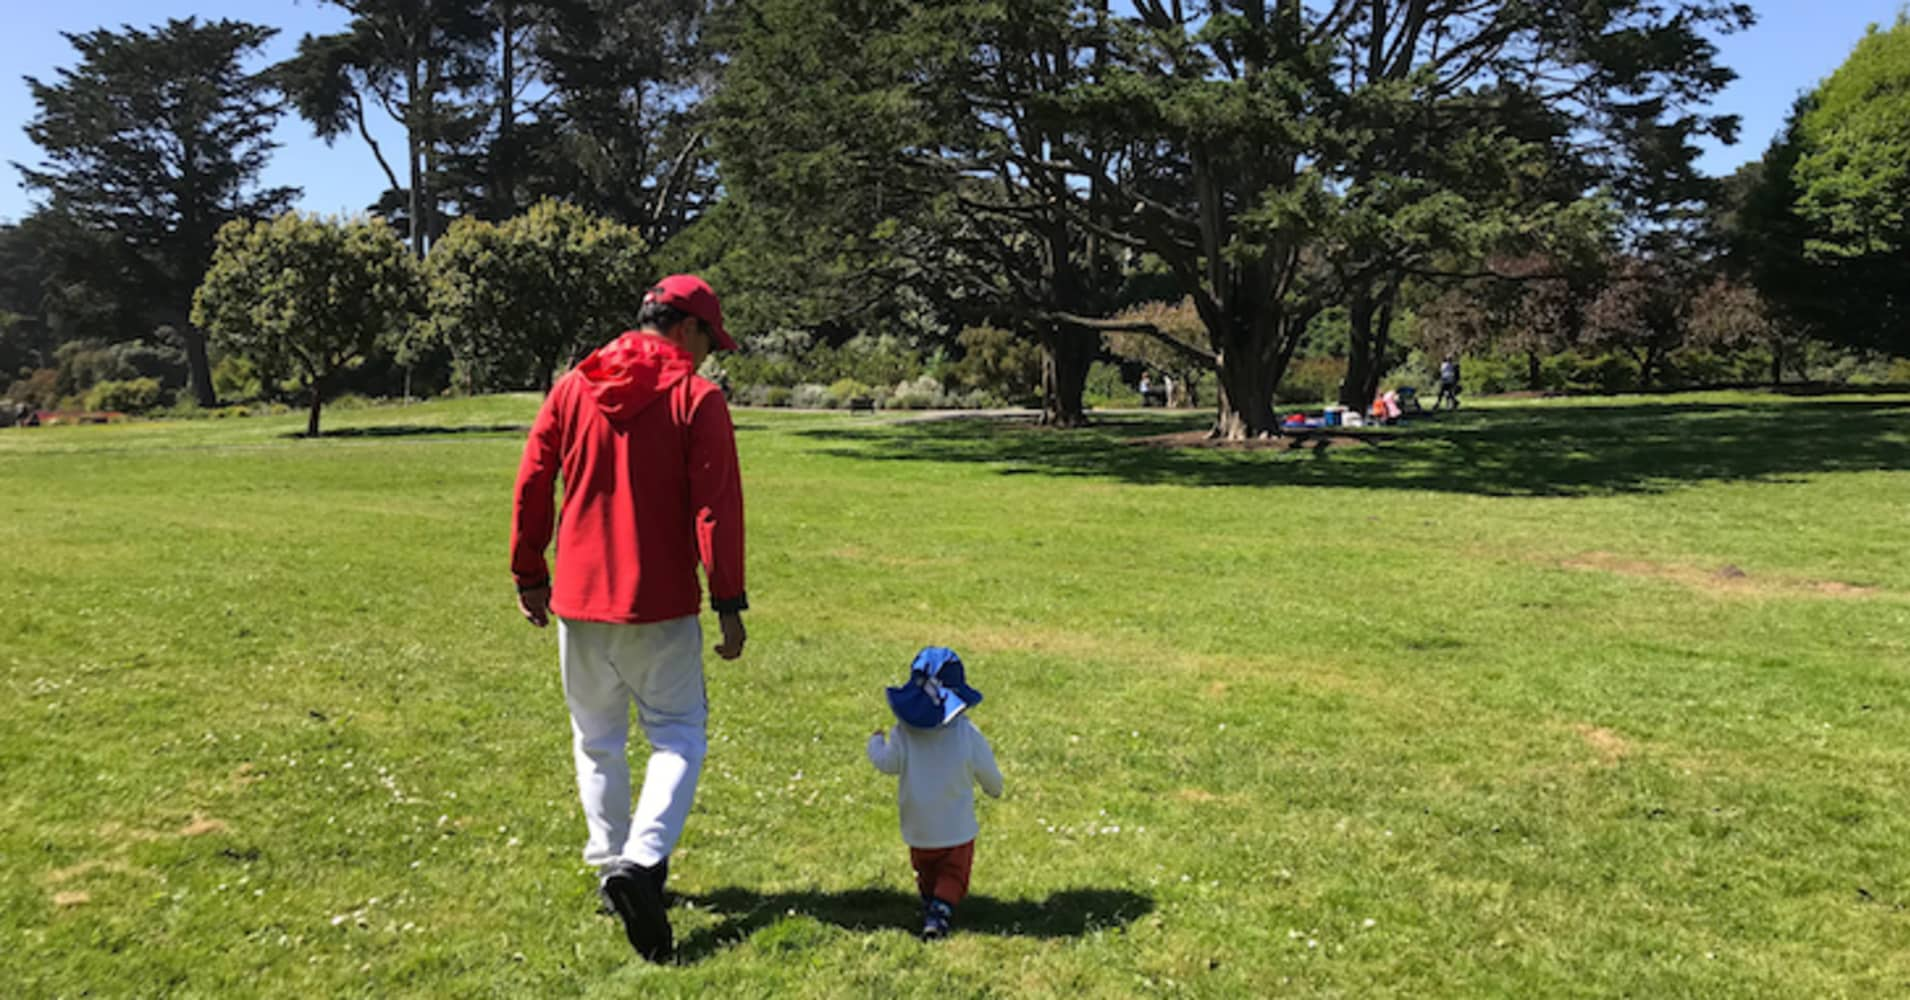 Sam Dogen and his son play in Golden Gate Park, San Fancisco.